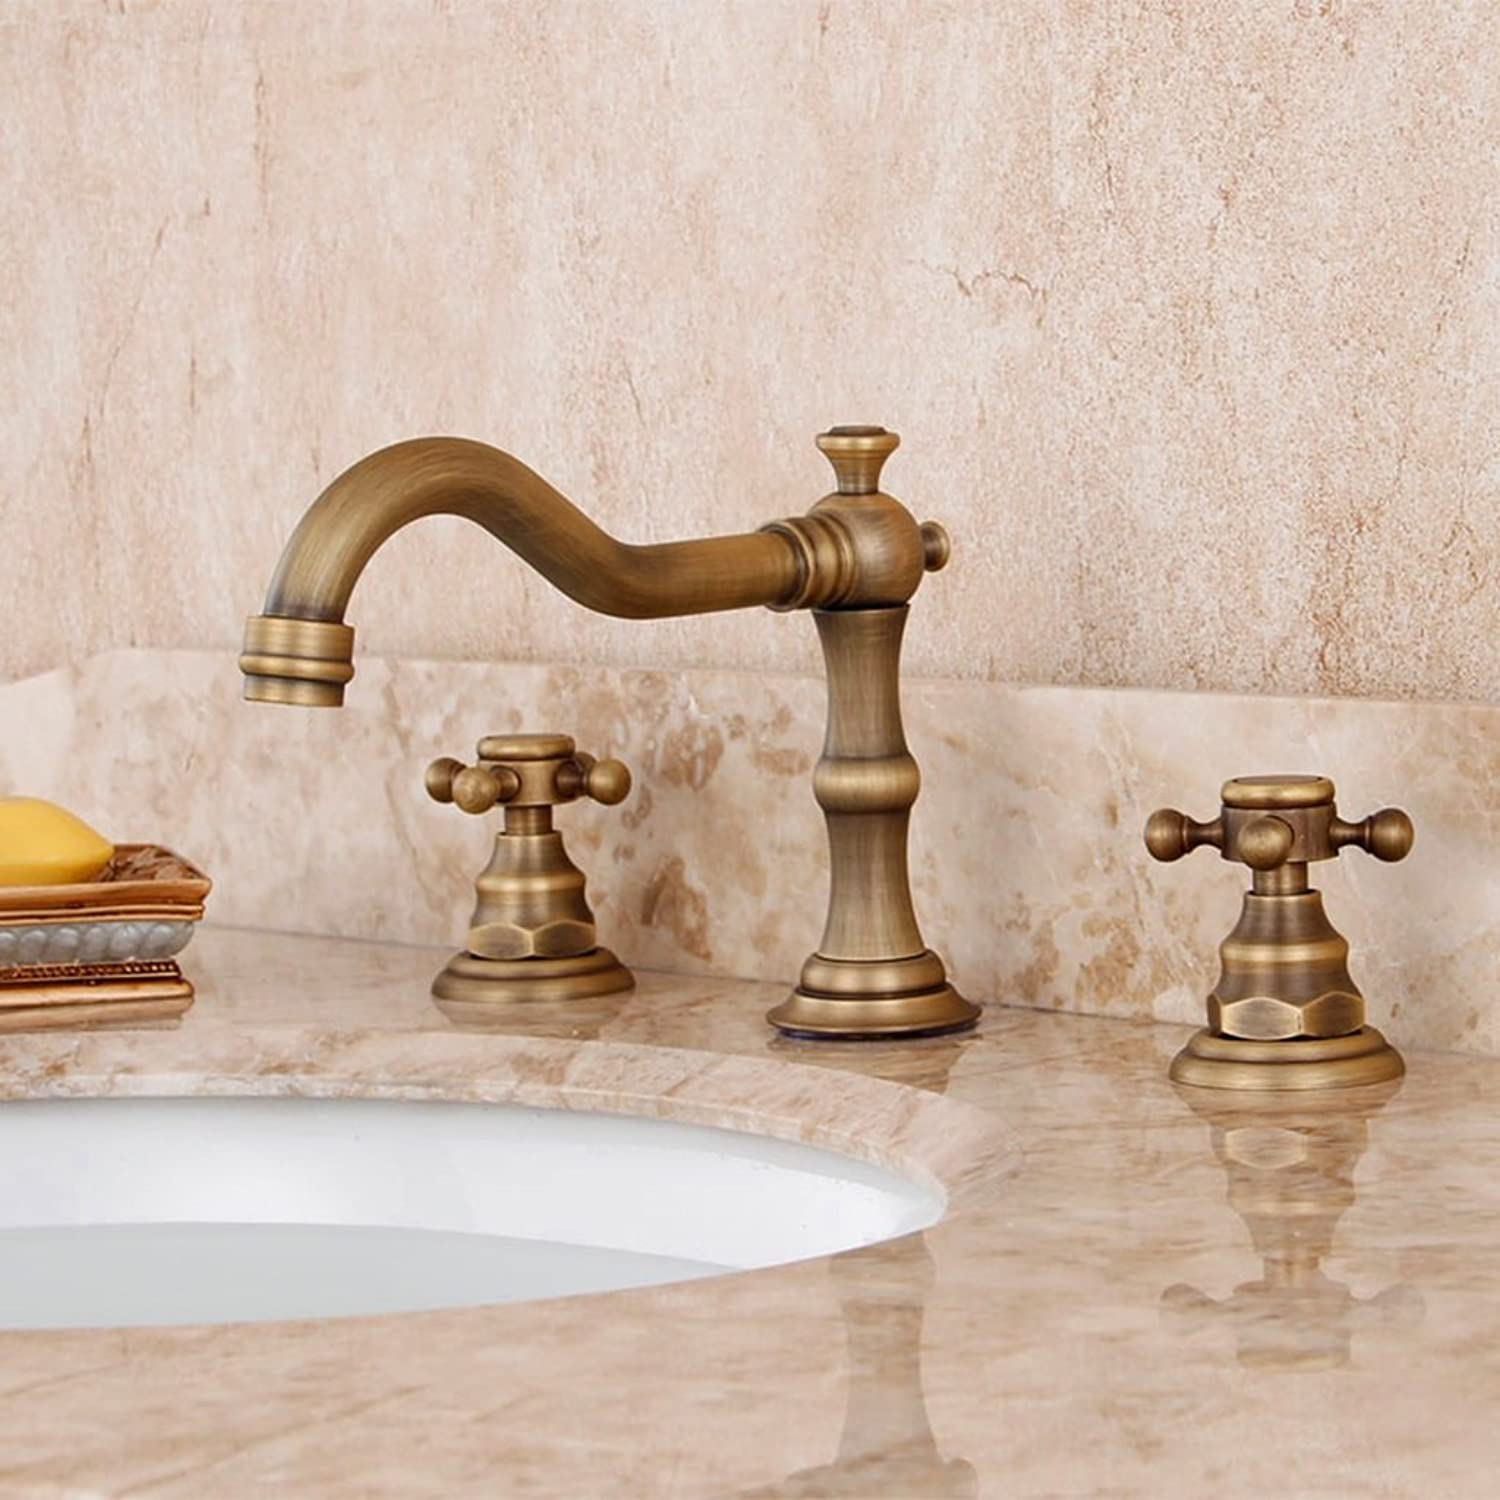 Sun LL Faucet European Antique Double To The Three-hole Faucet All Copper Retro Hot And Cold Faucet ( color   A )